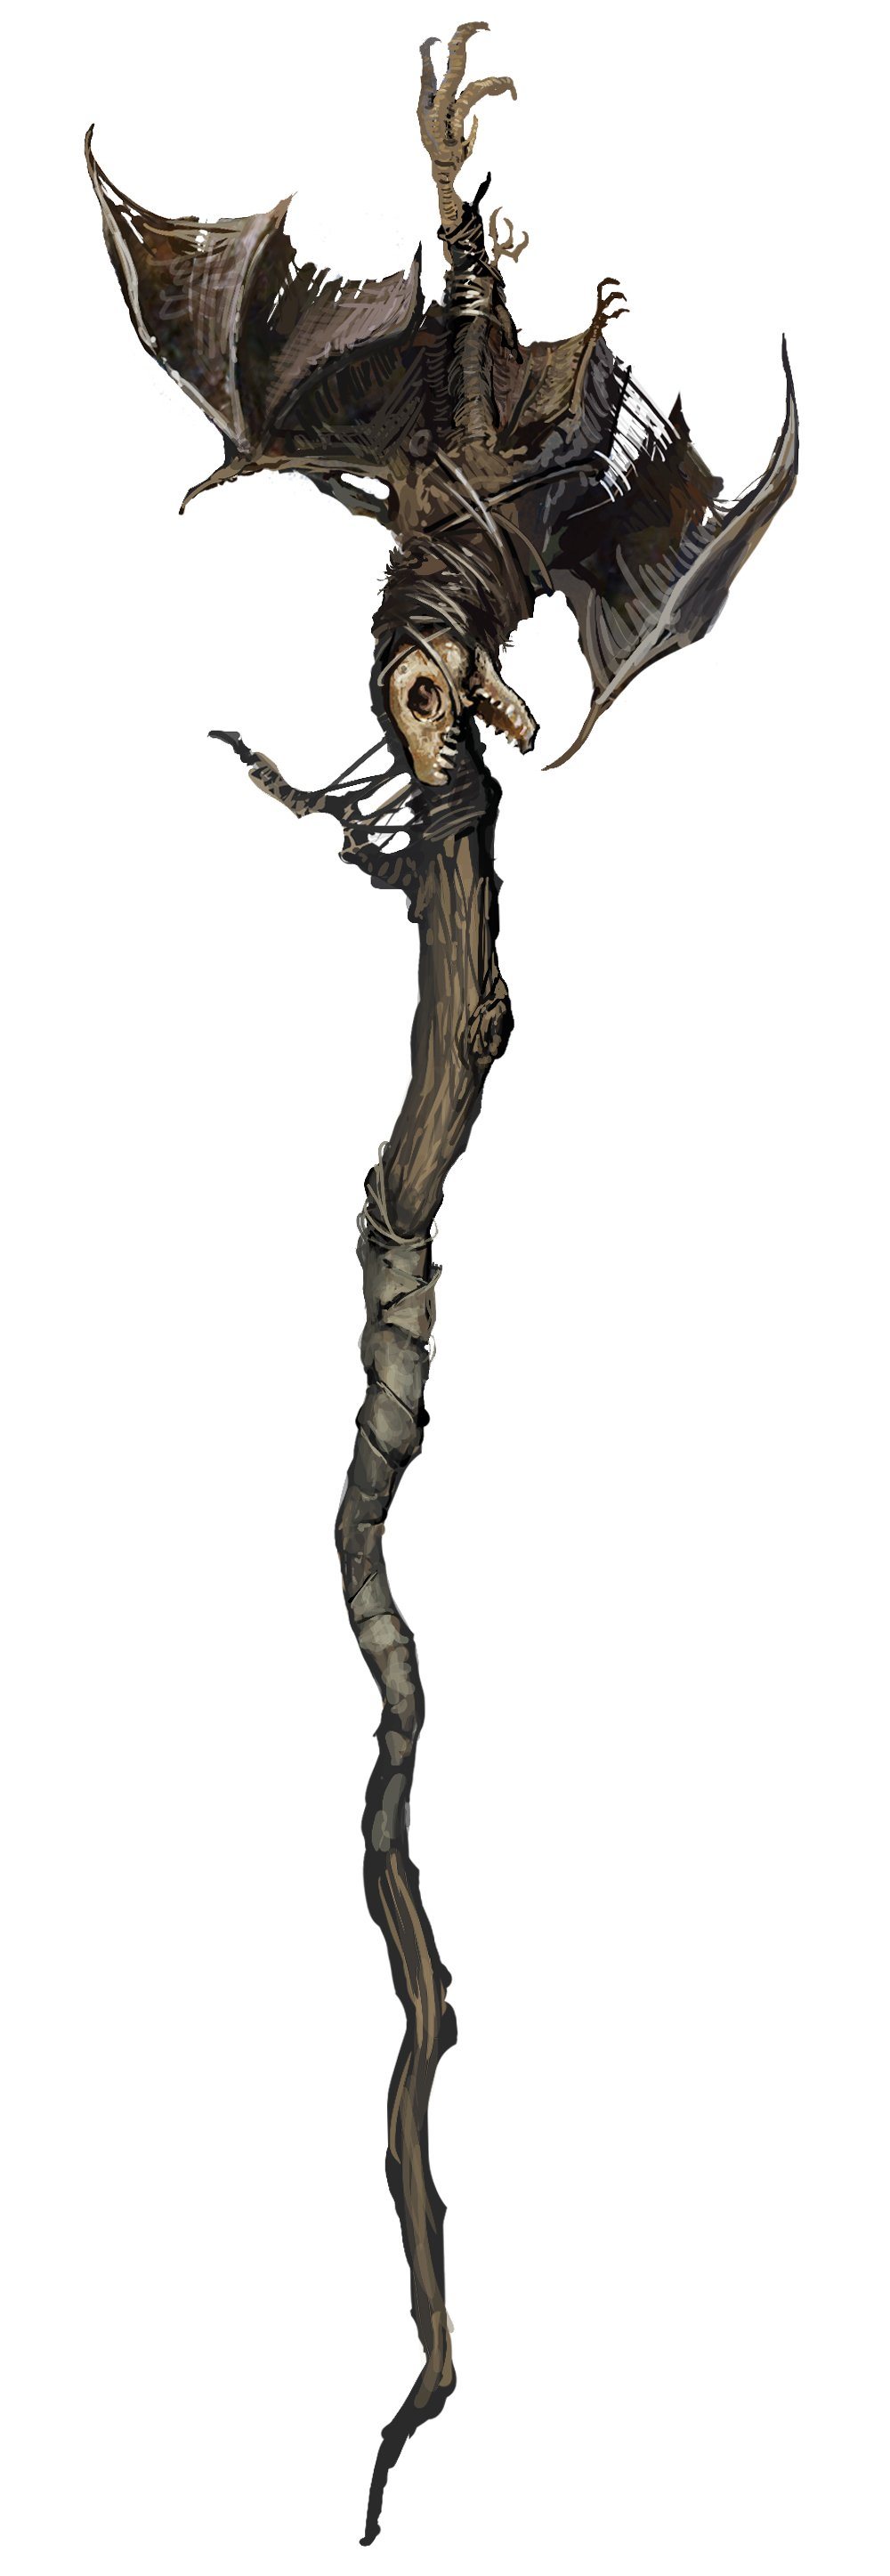 Art-Item-Staff.jpg